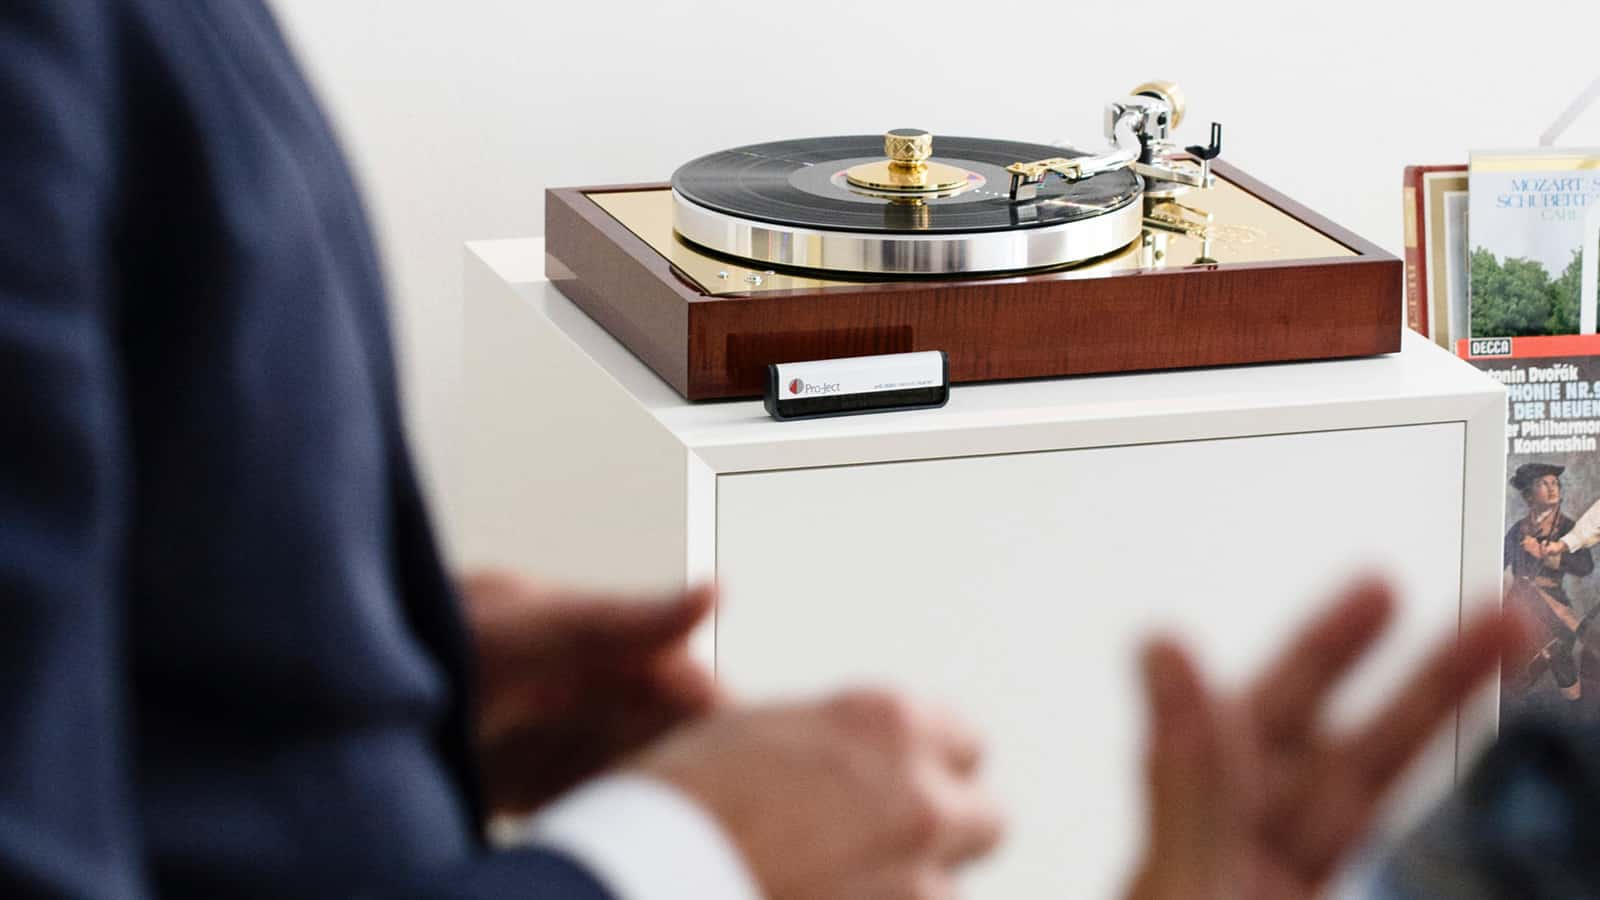 project-175-the-vienna-philharmonic-recordplayer